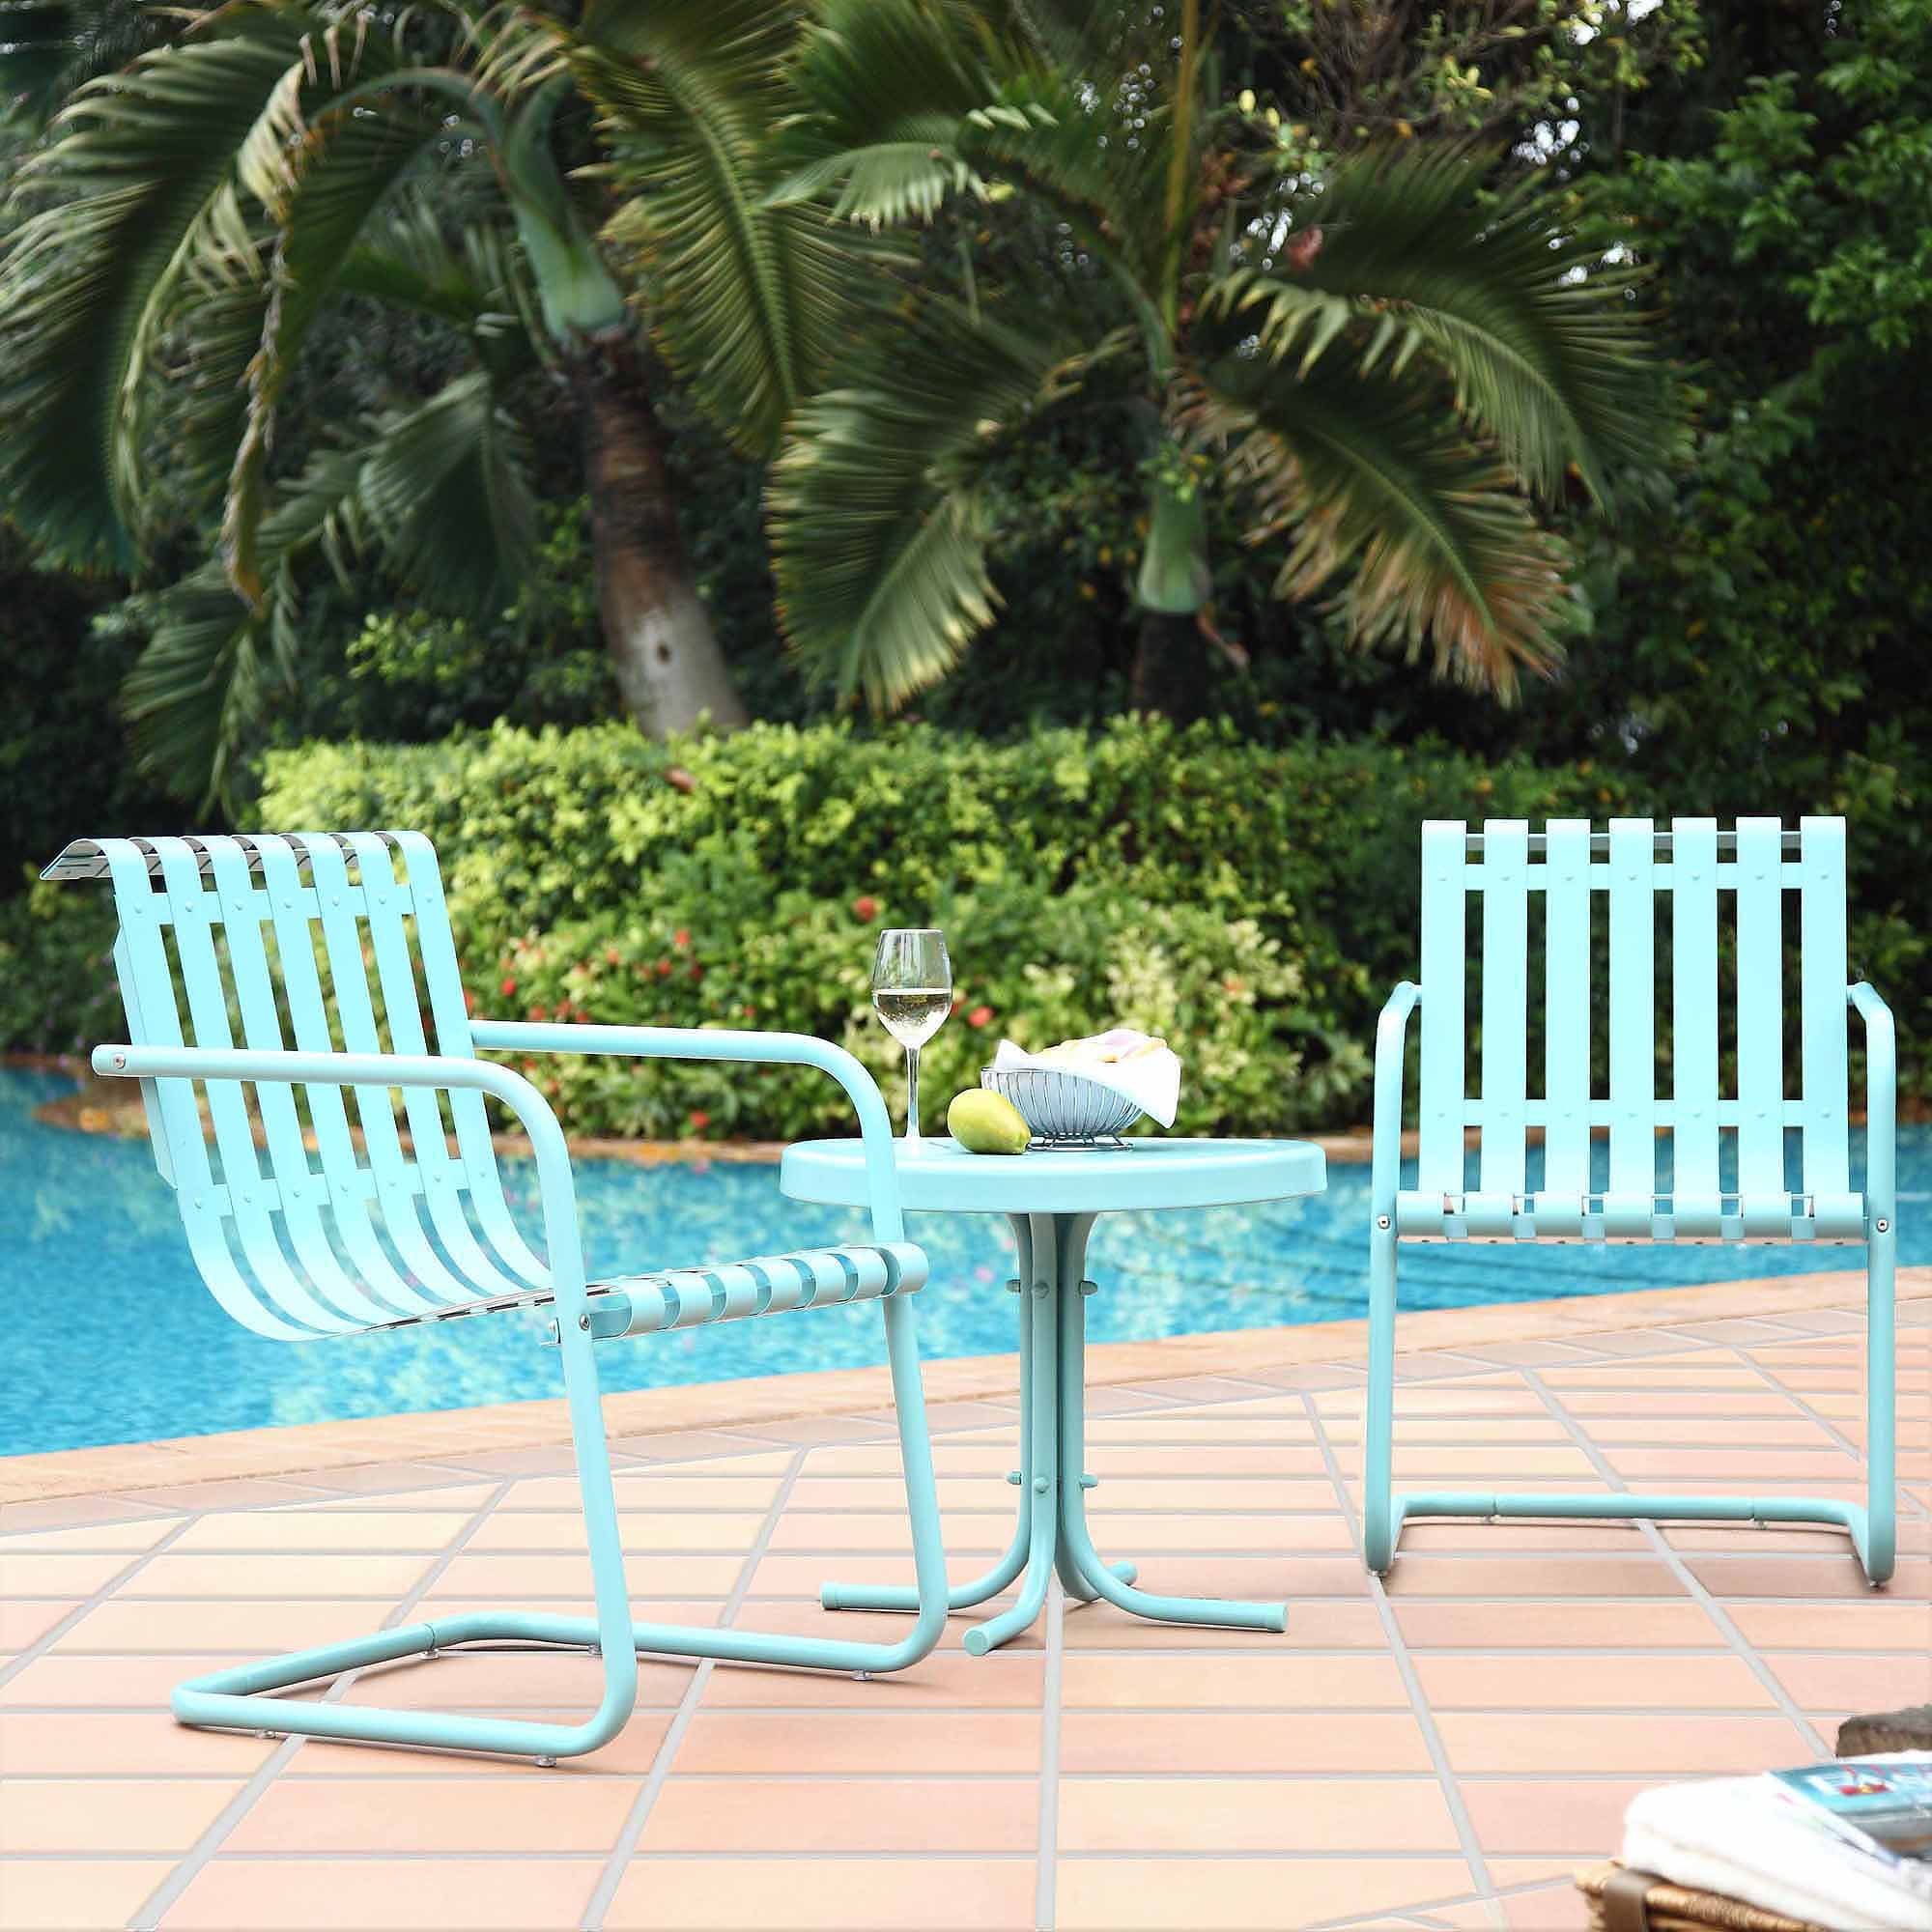 retro furniture patio steel white metal outdoor table and chairs crosley gracie piece conversation seating backyard side kyra father rolls barn door dining room pineapple light